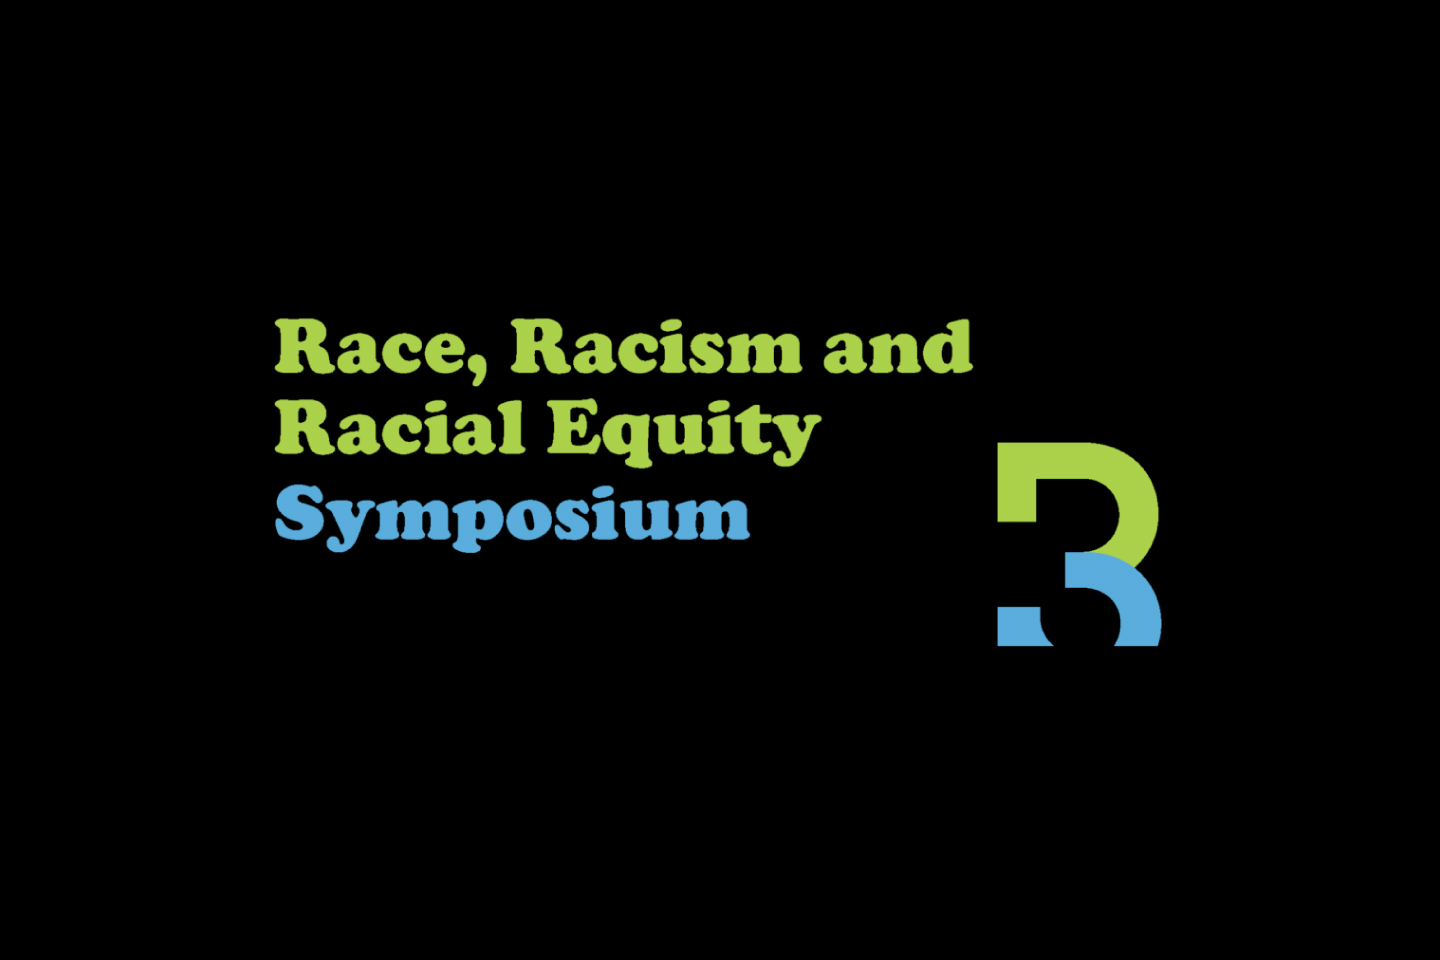 Race, Racism, and Racial Equity (R3) Symposium